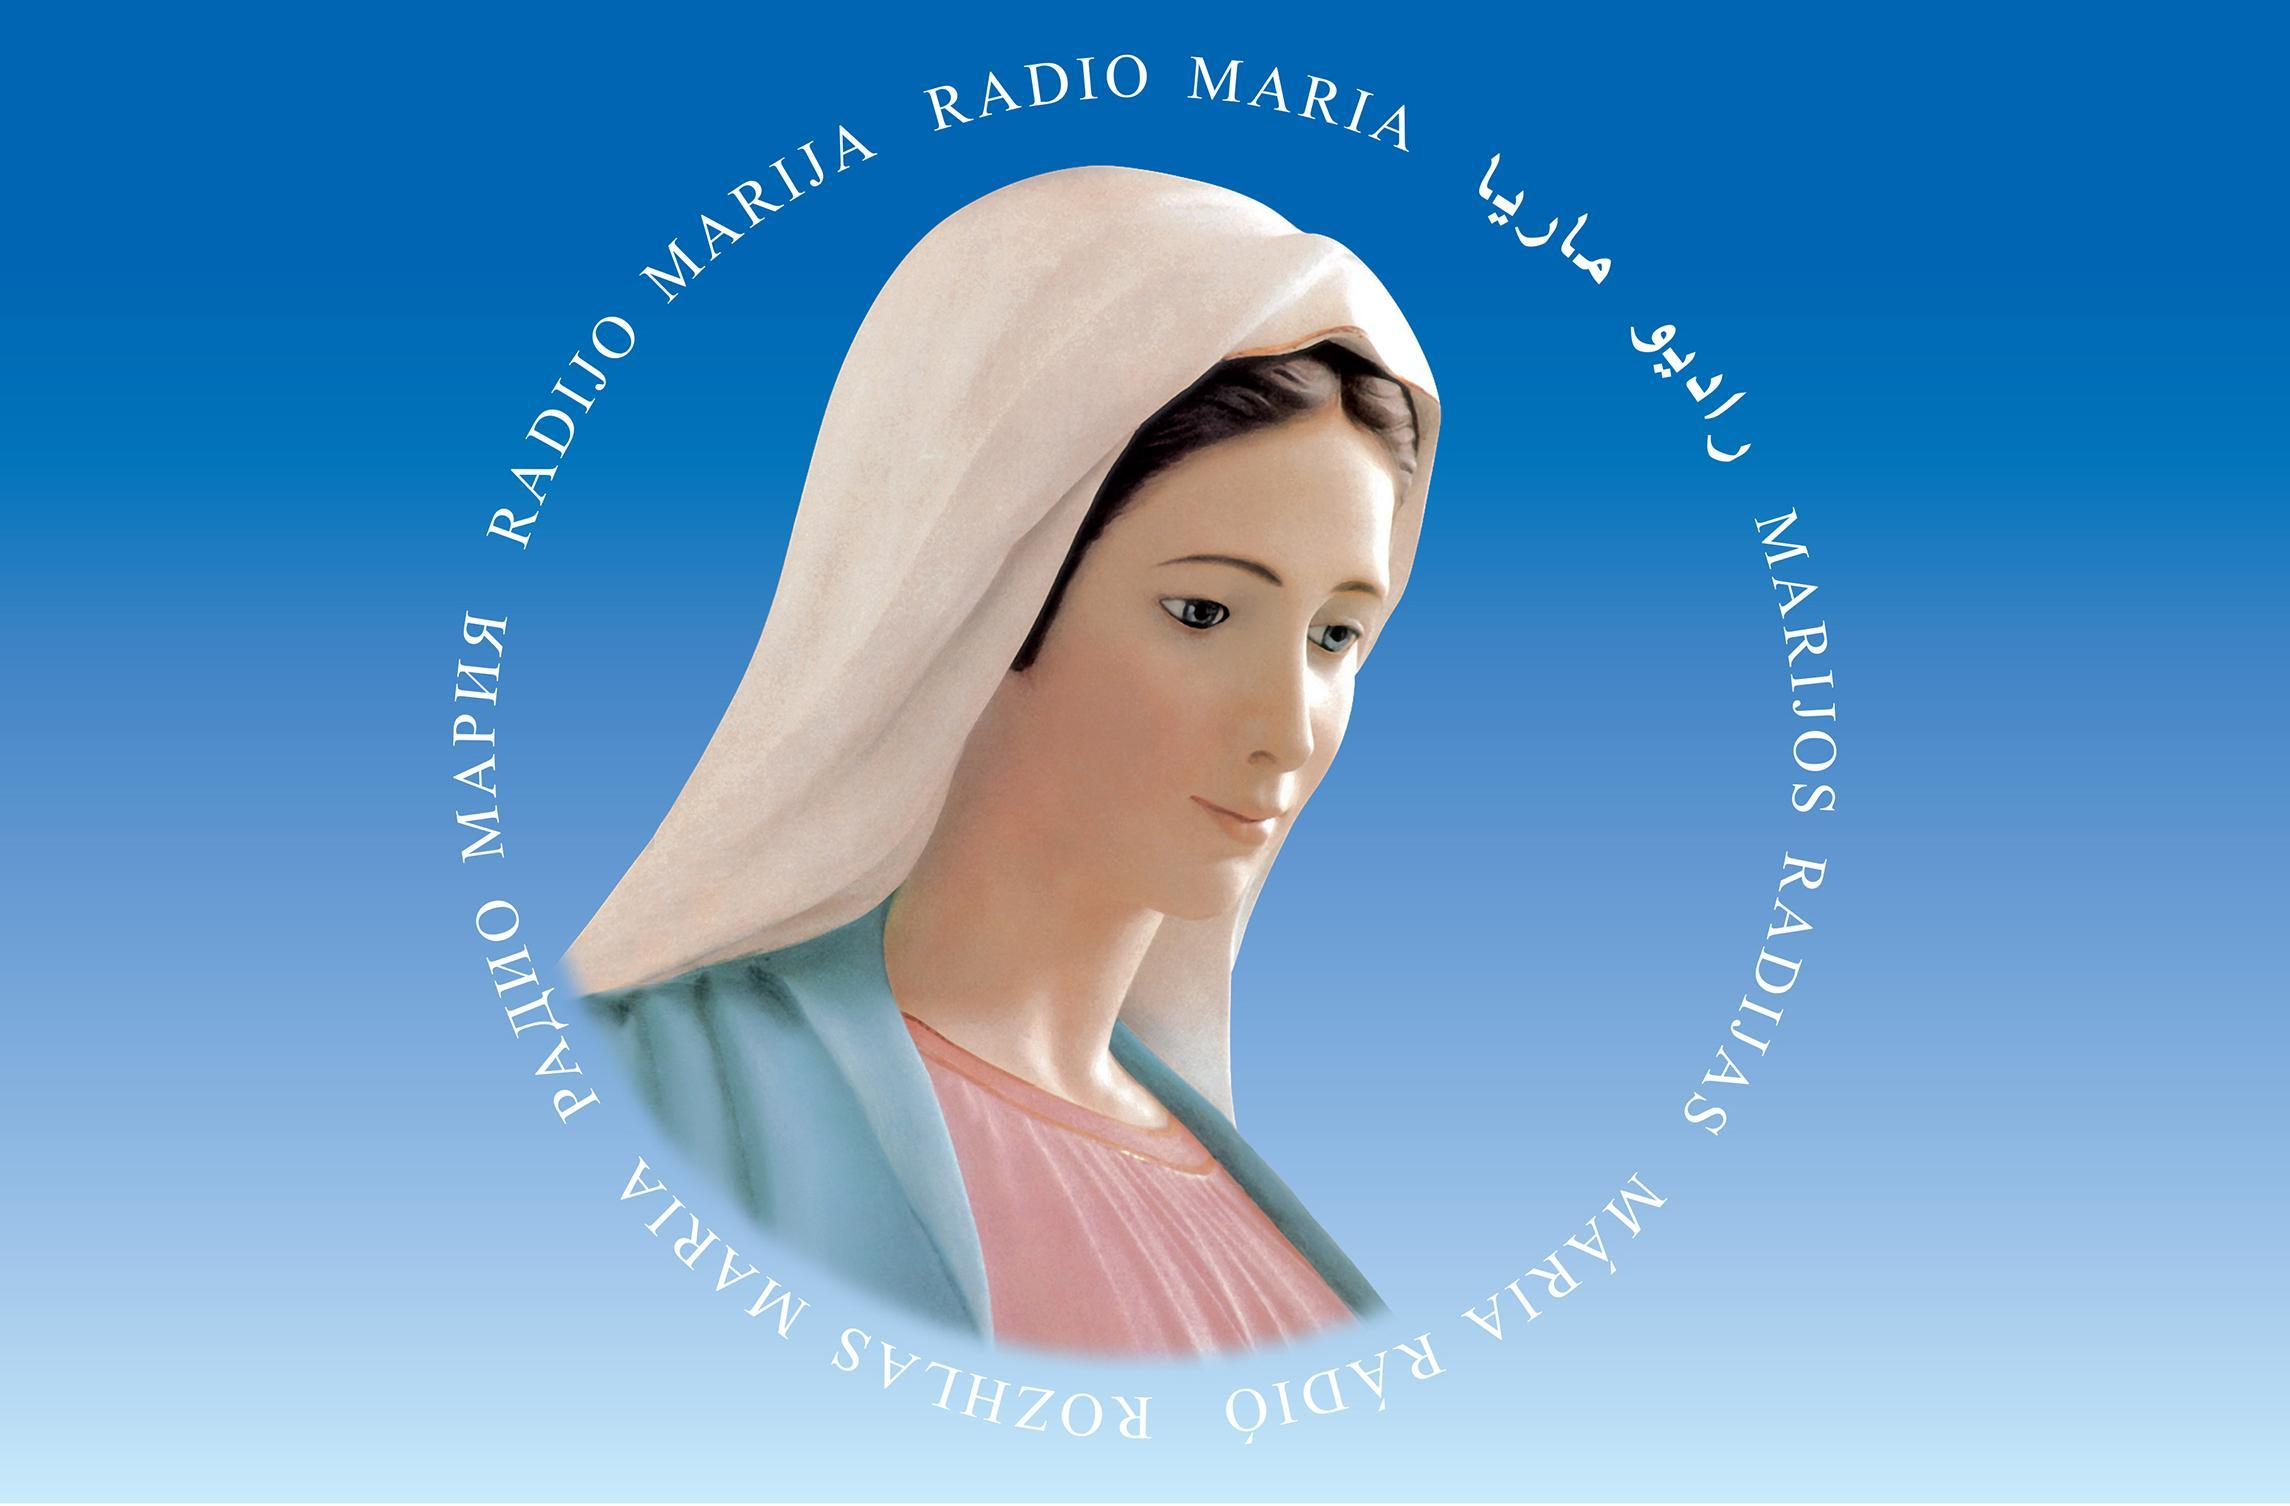 Good News from Radio Maria Malta